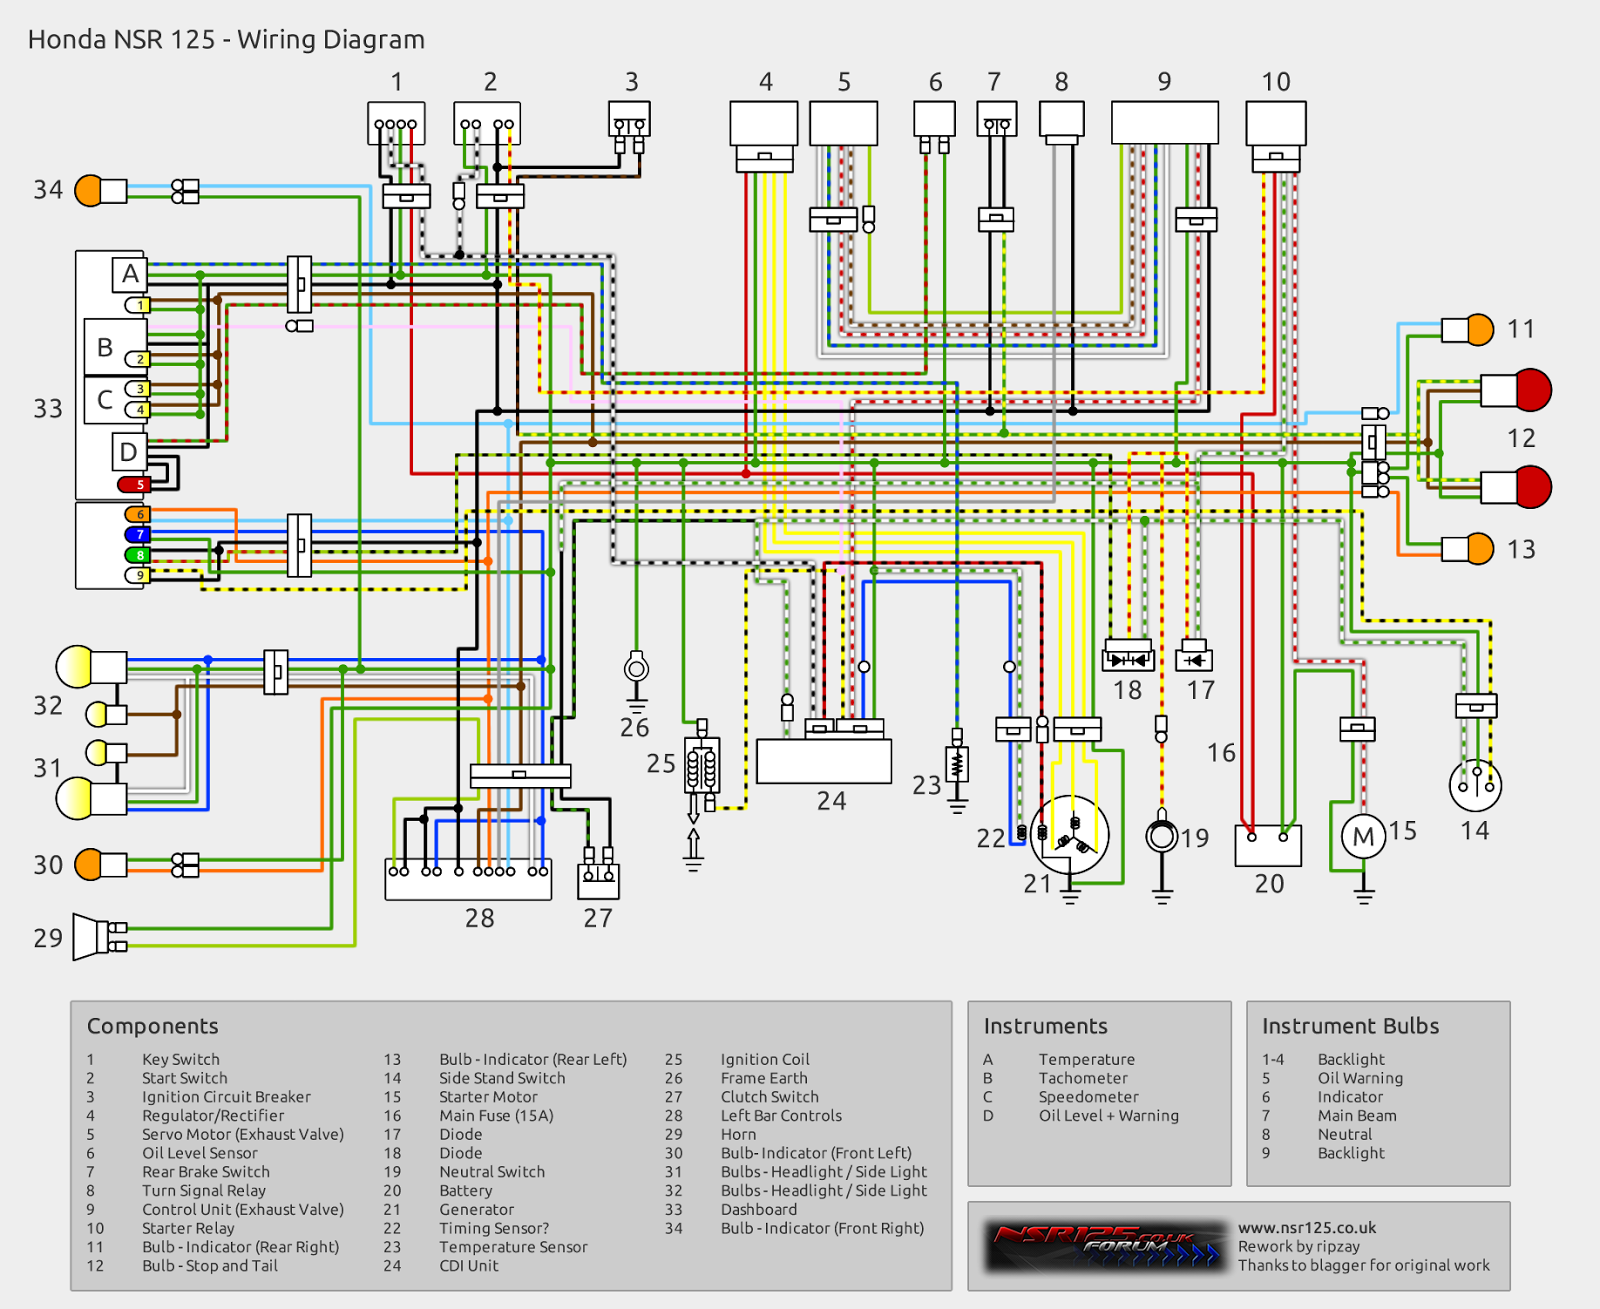 Honda Wave 125 Wiring Diagram : Nsr lab